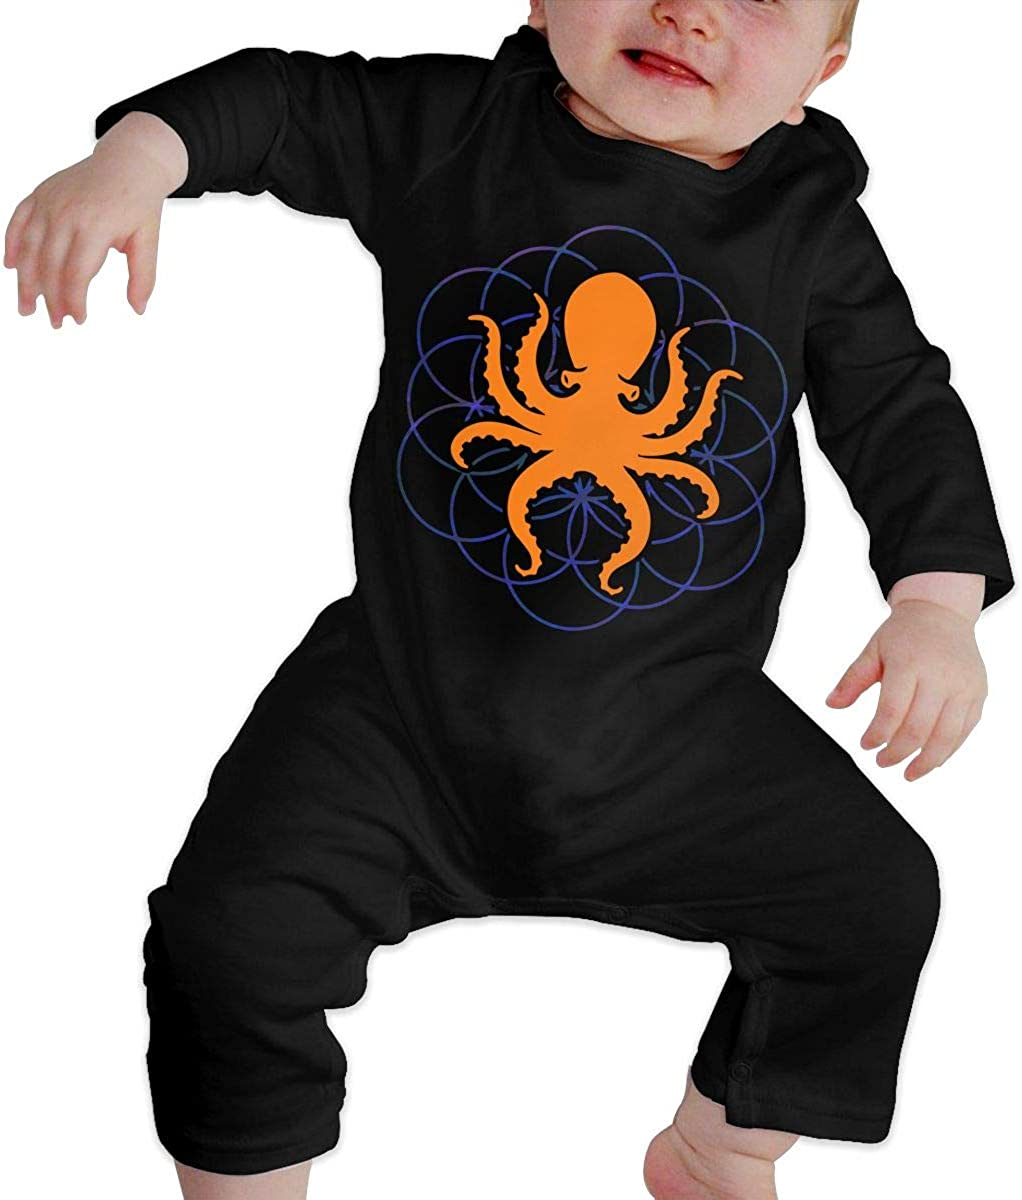 YELTY6F Psychedelic Sacred Geometry Octopus-2 Printed Newborn Baby One-Piece Suit Long Sleeve Pajamas Black